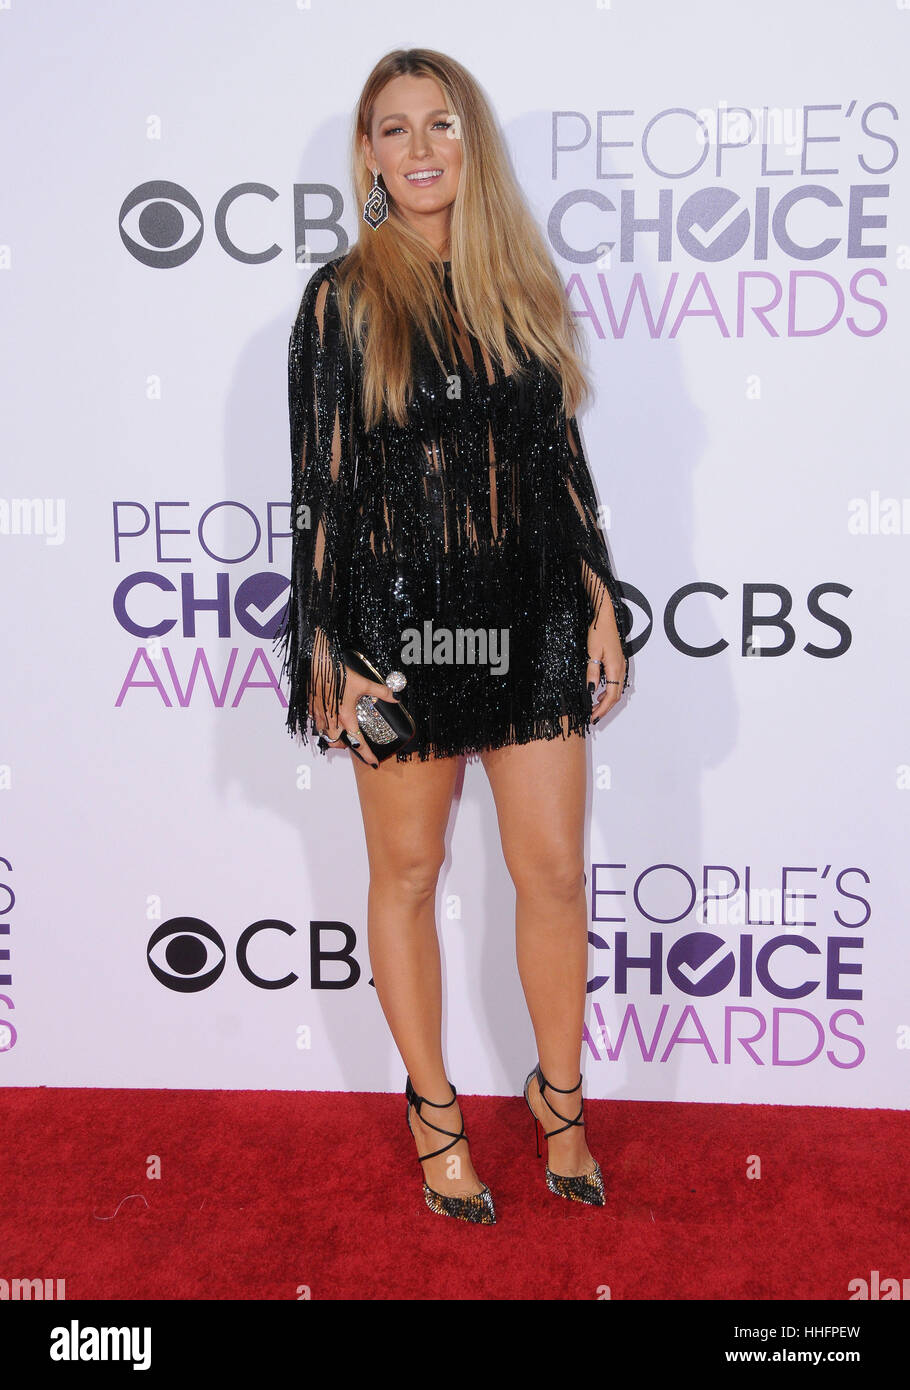 Los Angeles, CA, USA. 18. Januar 2017.  Blake Lively. 2017 Peoples Choice Awards 2017 auf der Microsoft-Theater Stockbild